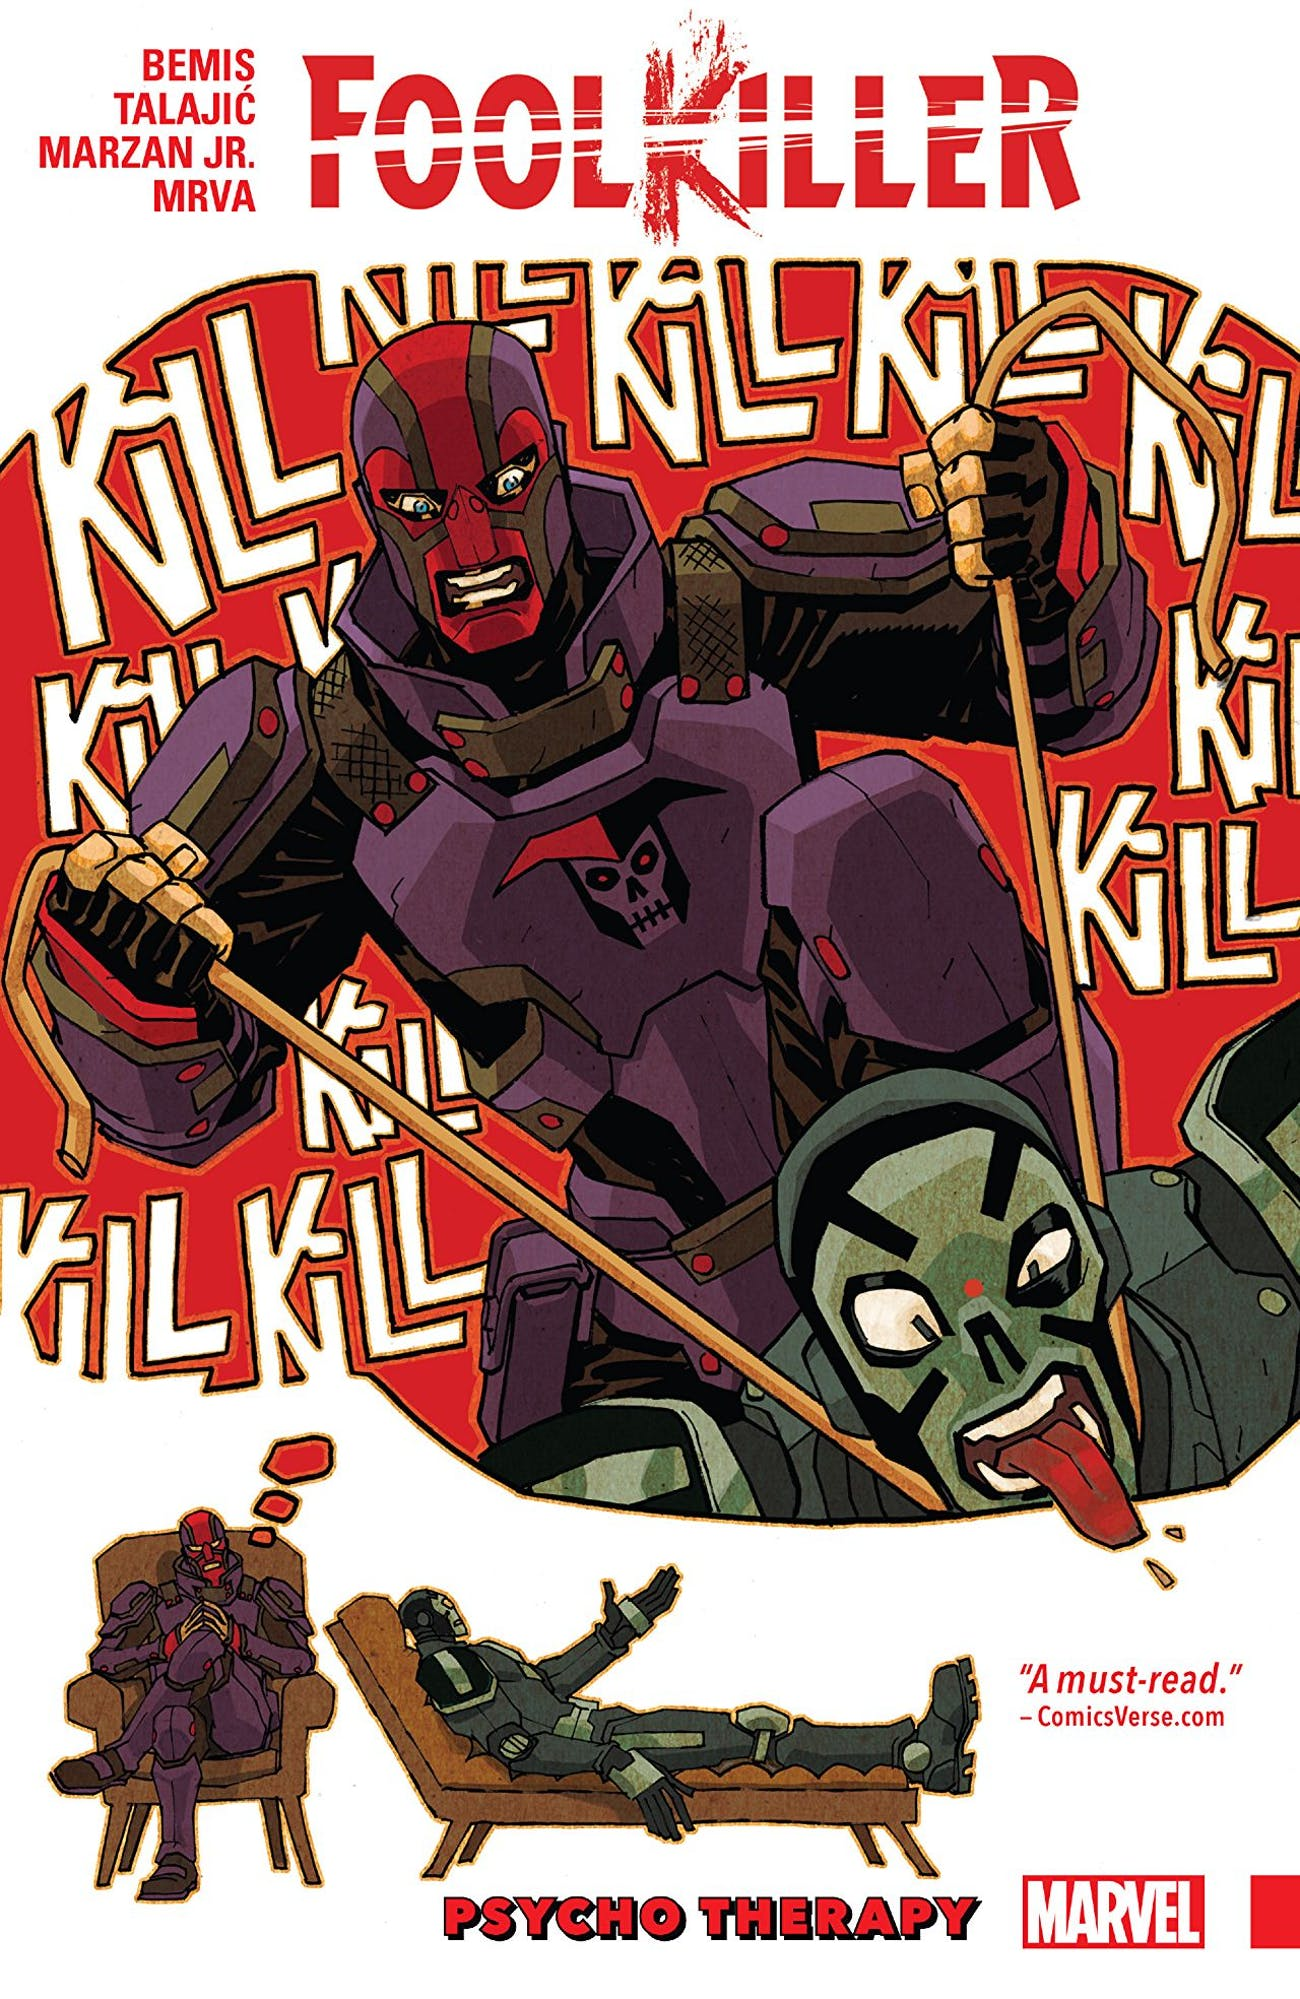 Jessica Jones Marvel Foolkiller